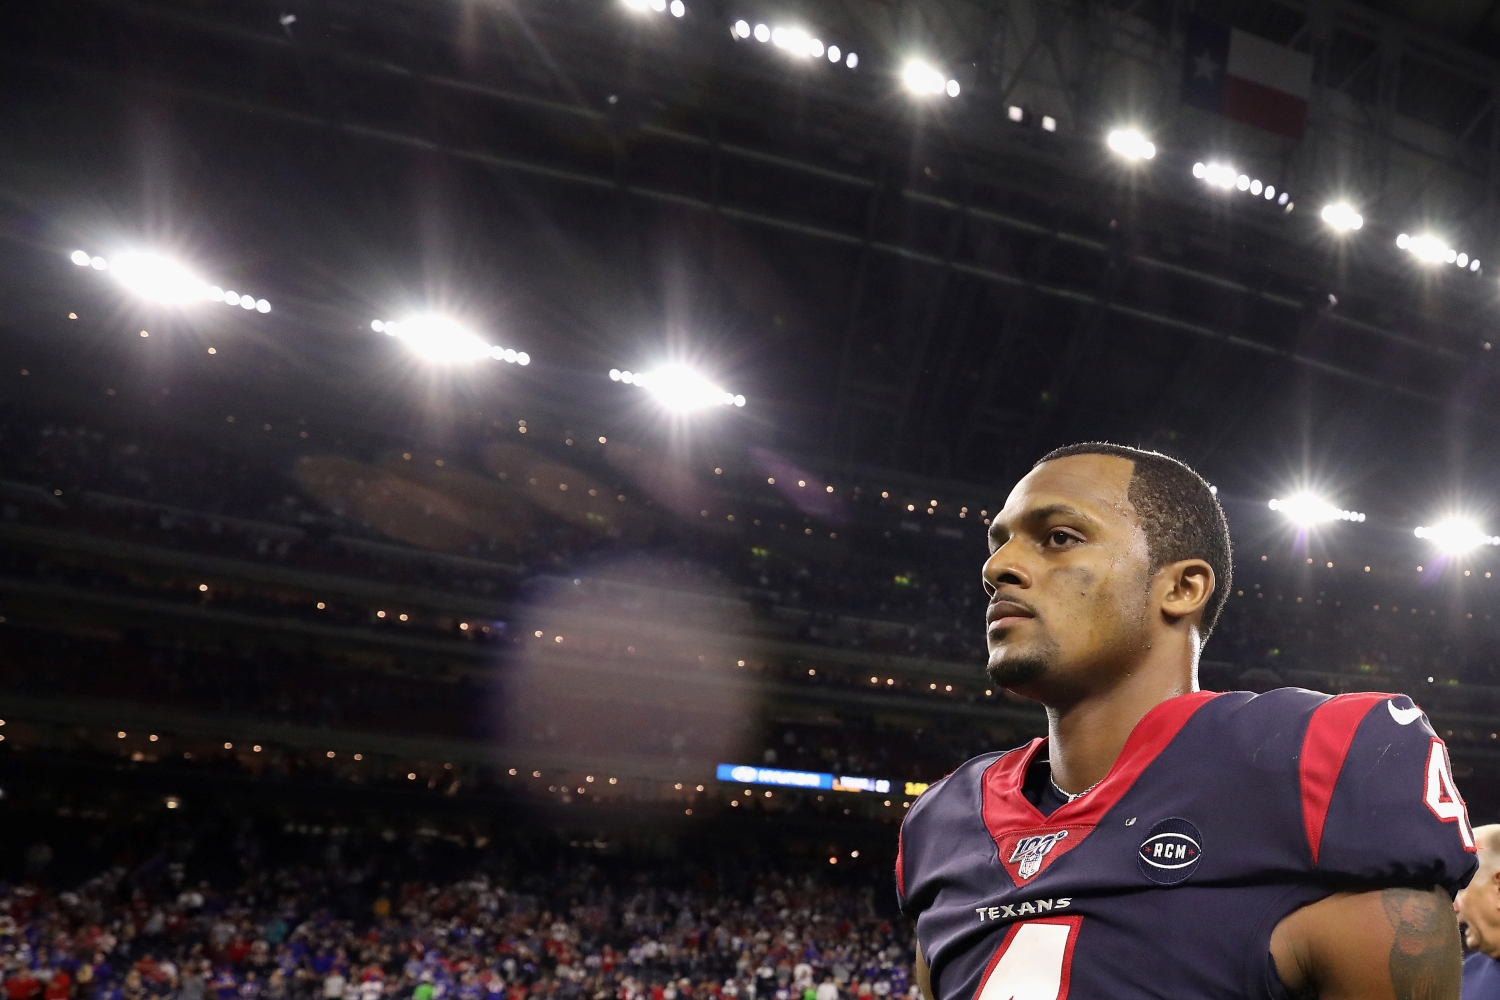 Deshaun Watson walks off the field after the Houston Texans lost to the Buffalo Bills in the playoffs on Jan. 4, 2020.